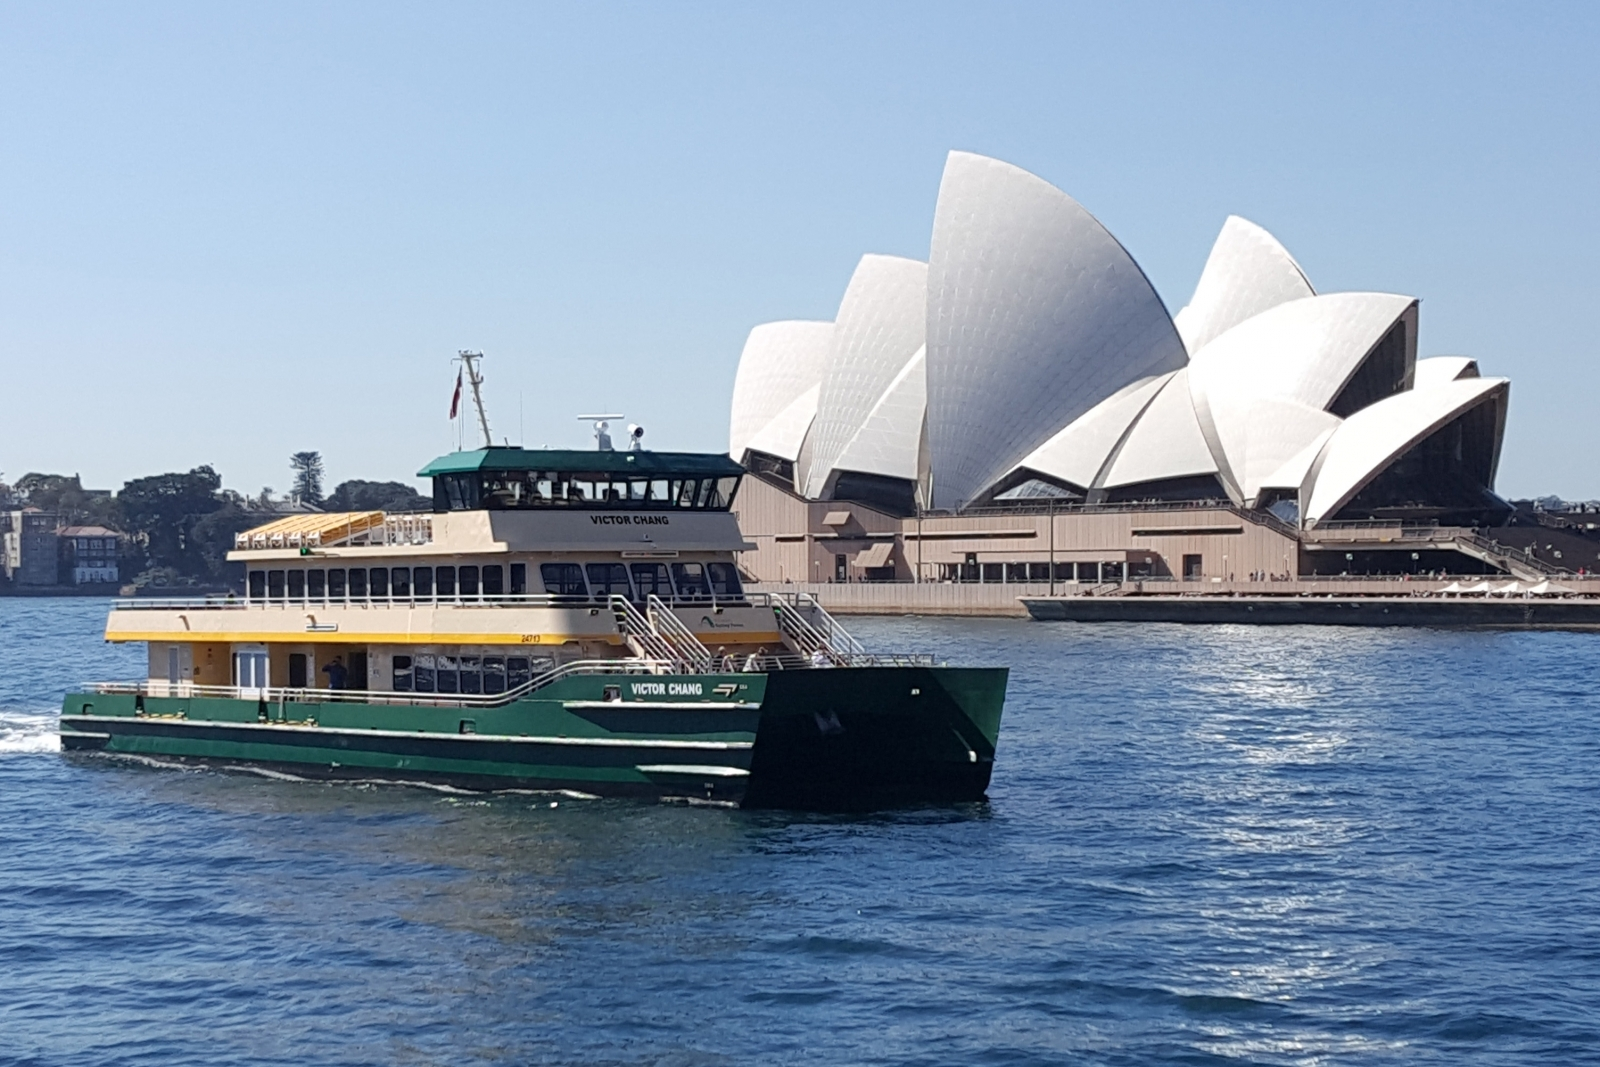 After Online Vote, Australian Ferry Will Be Named 'Ferry McFerryface'